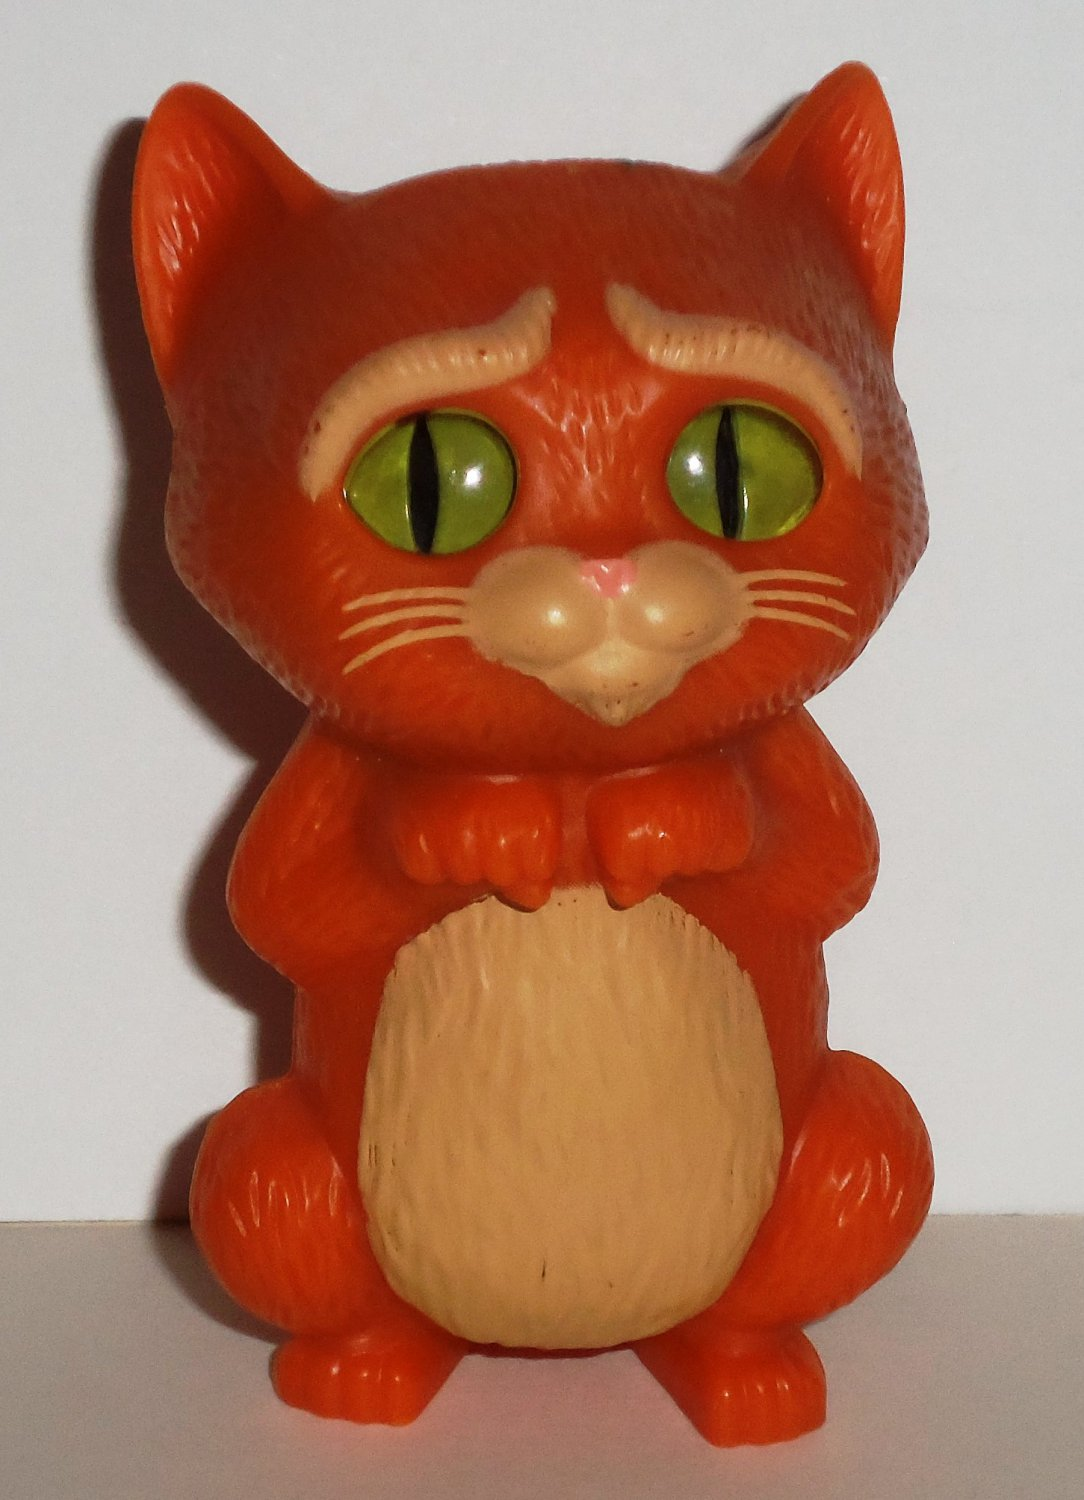 McDonald's 2011 Puss in Boots Cute Eyes Happy Meal Toy Loose Used